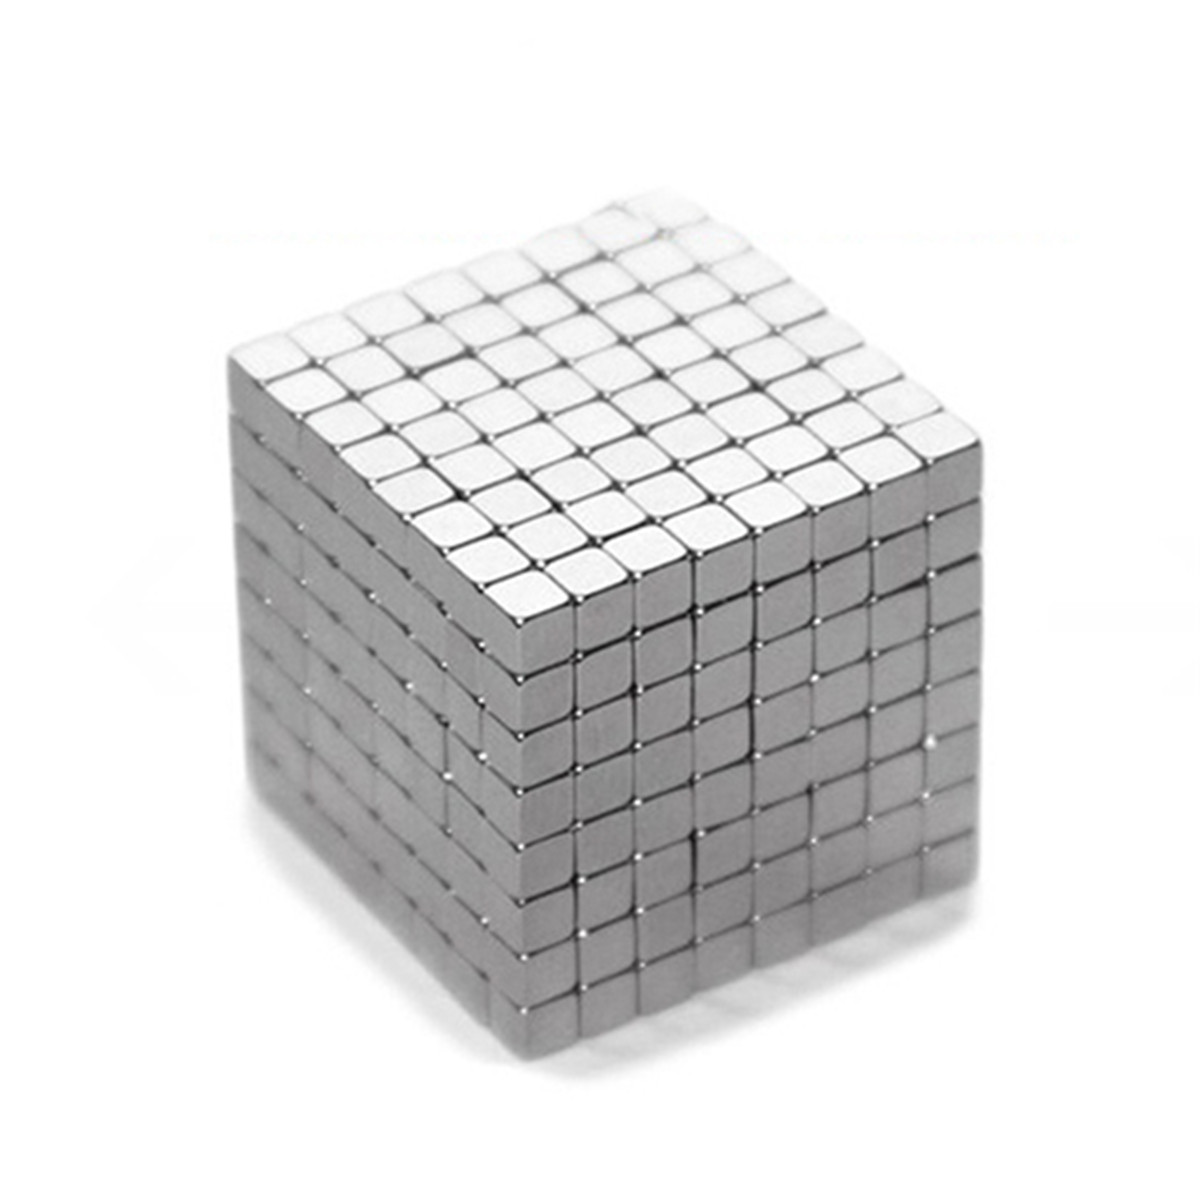 3mm 125Pcs Powerful Rare Earth Neodymium Square Magnets Block Cube DIY Educational Toy Magnetic Cube Creativity Intellectual Toy